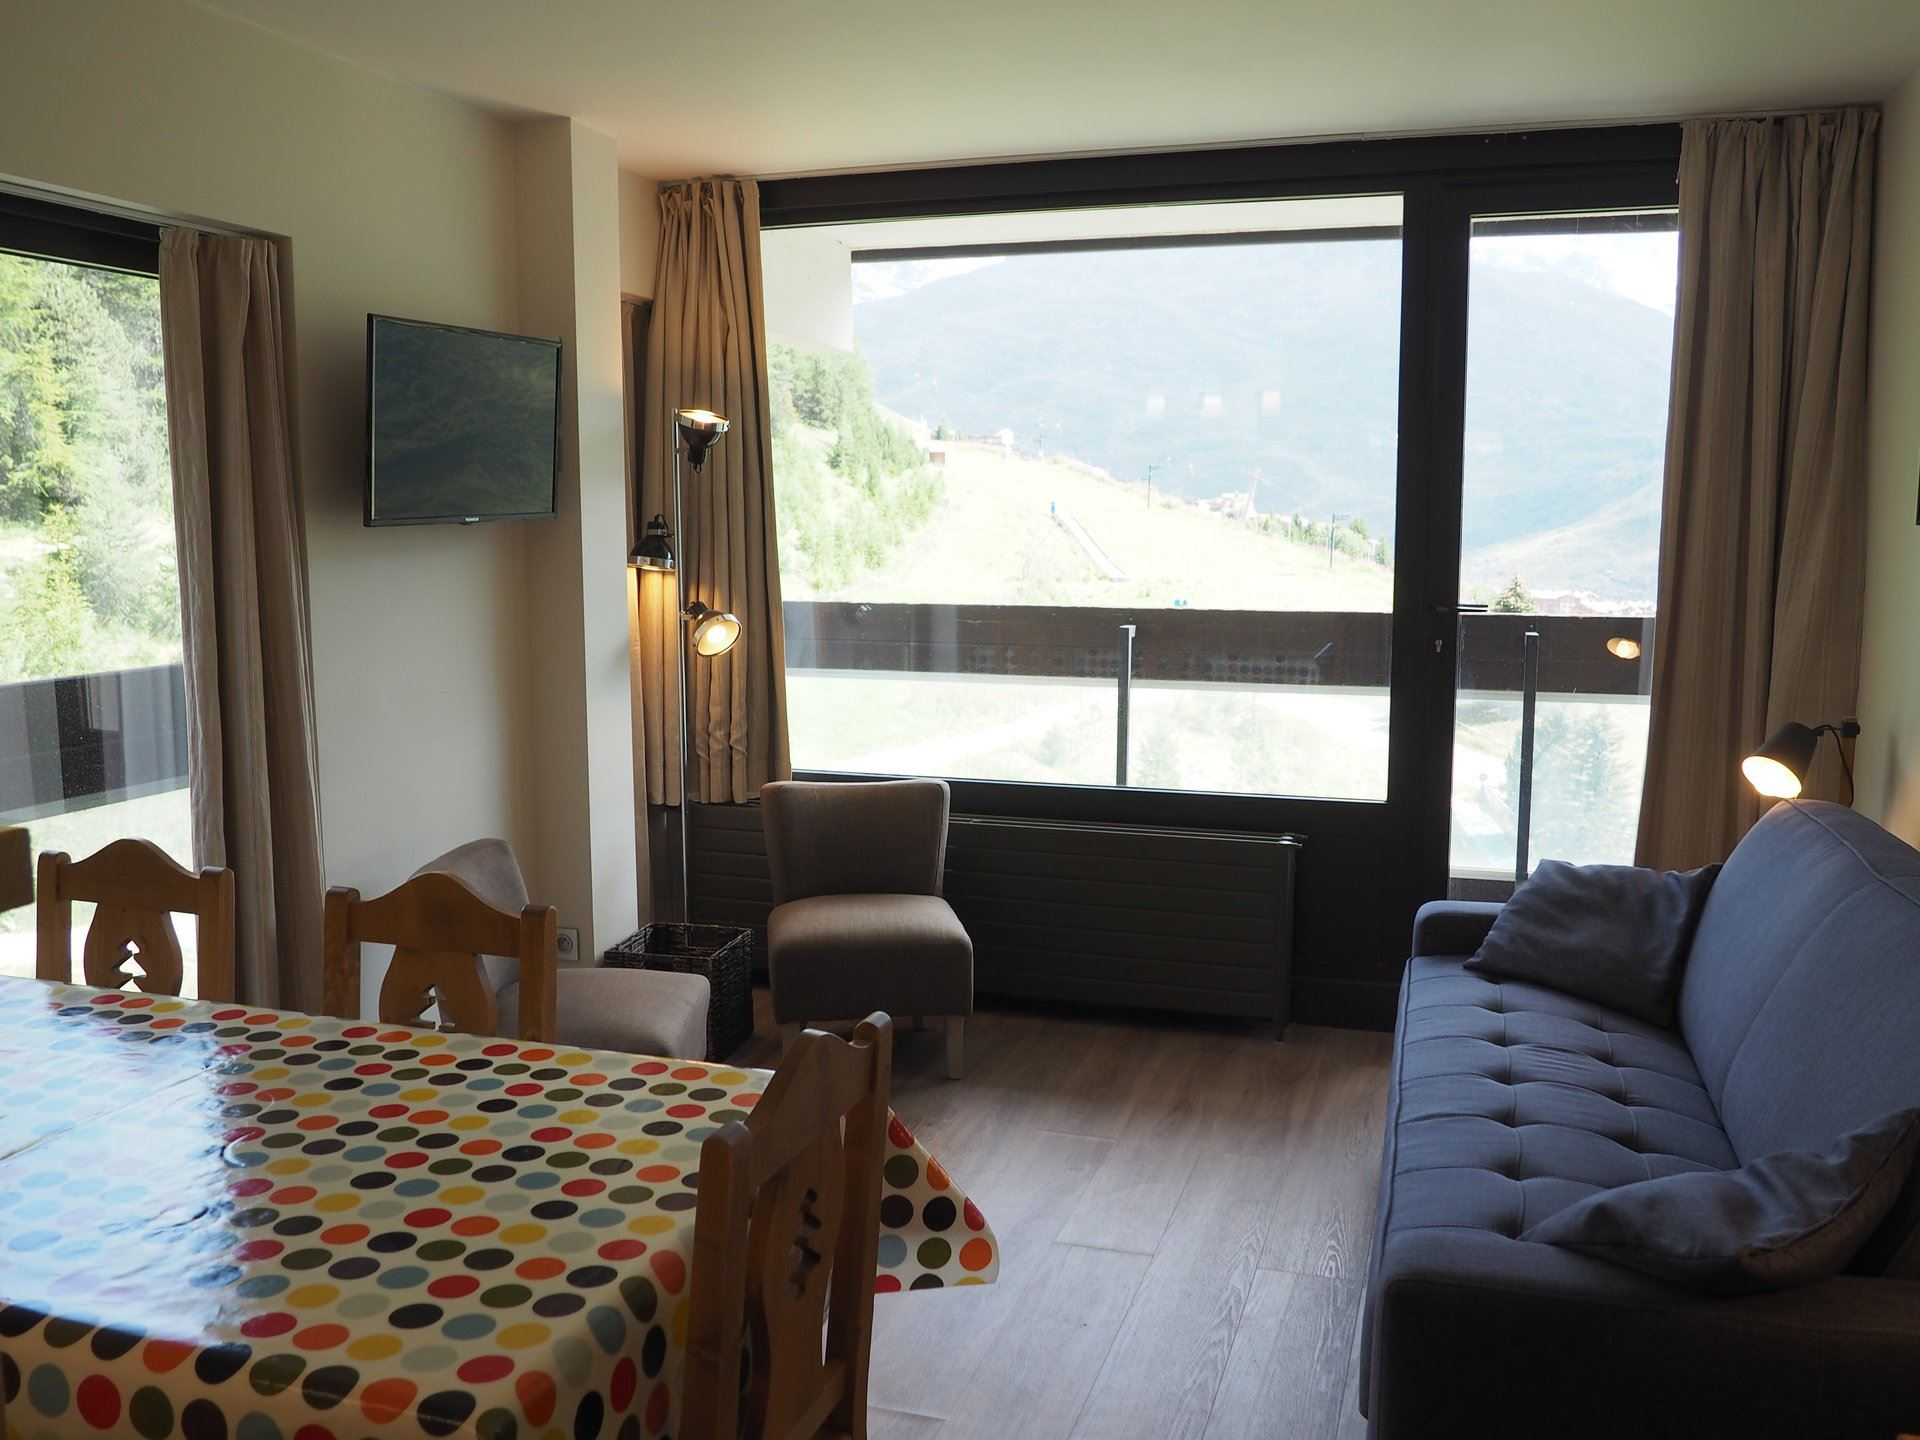 2 room 6 pers ski-in ski-out / DORONS 605